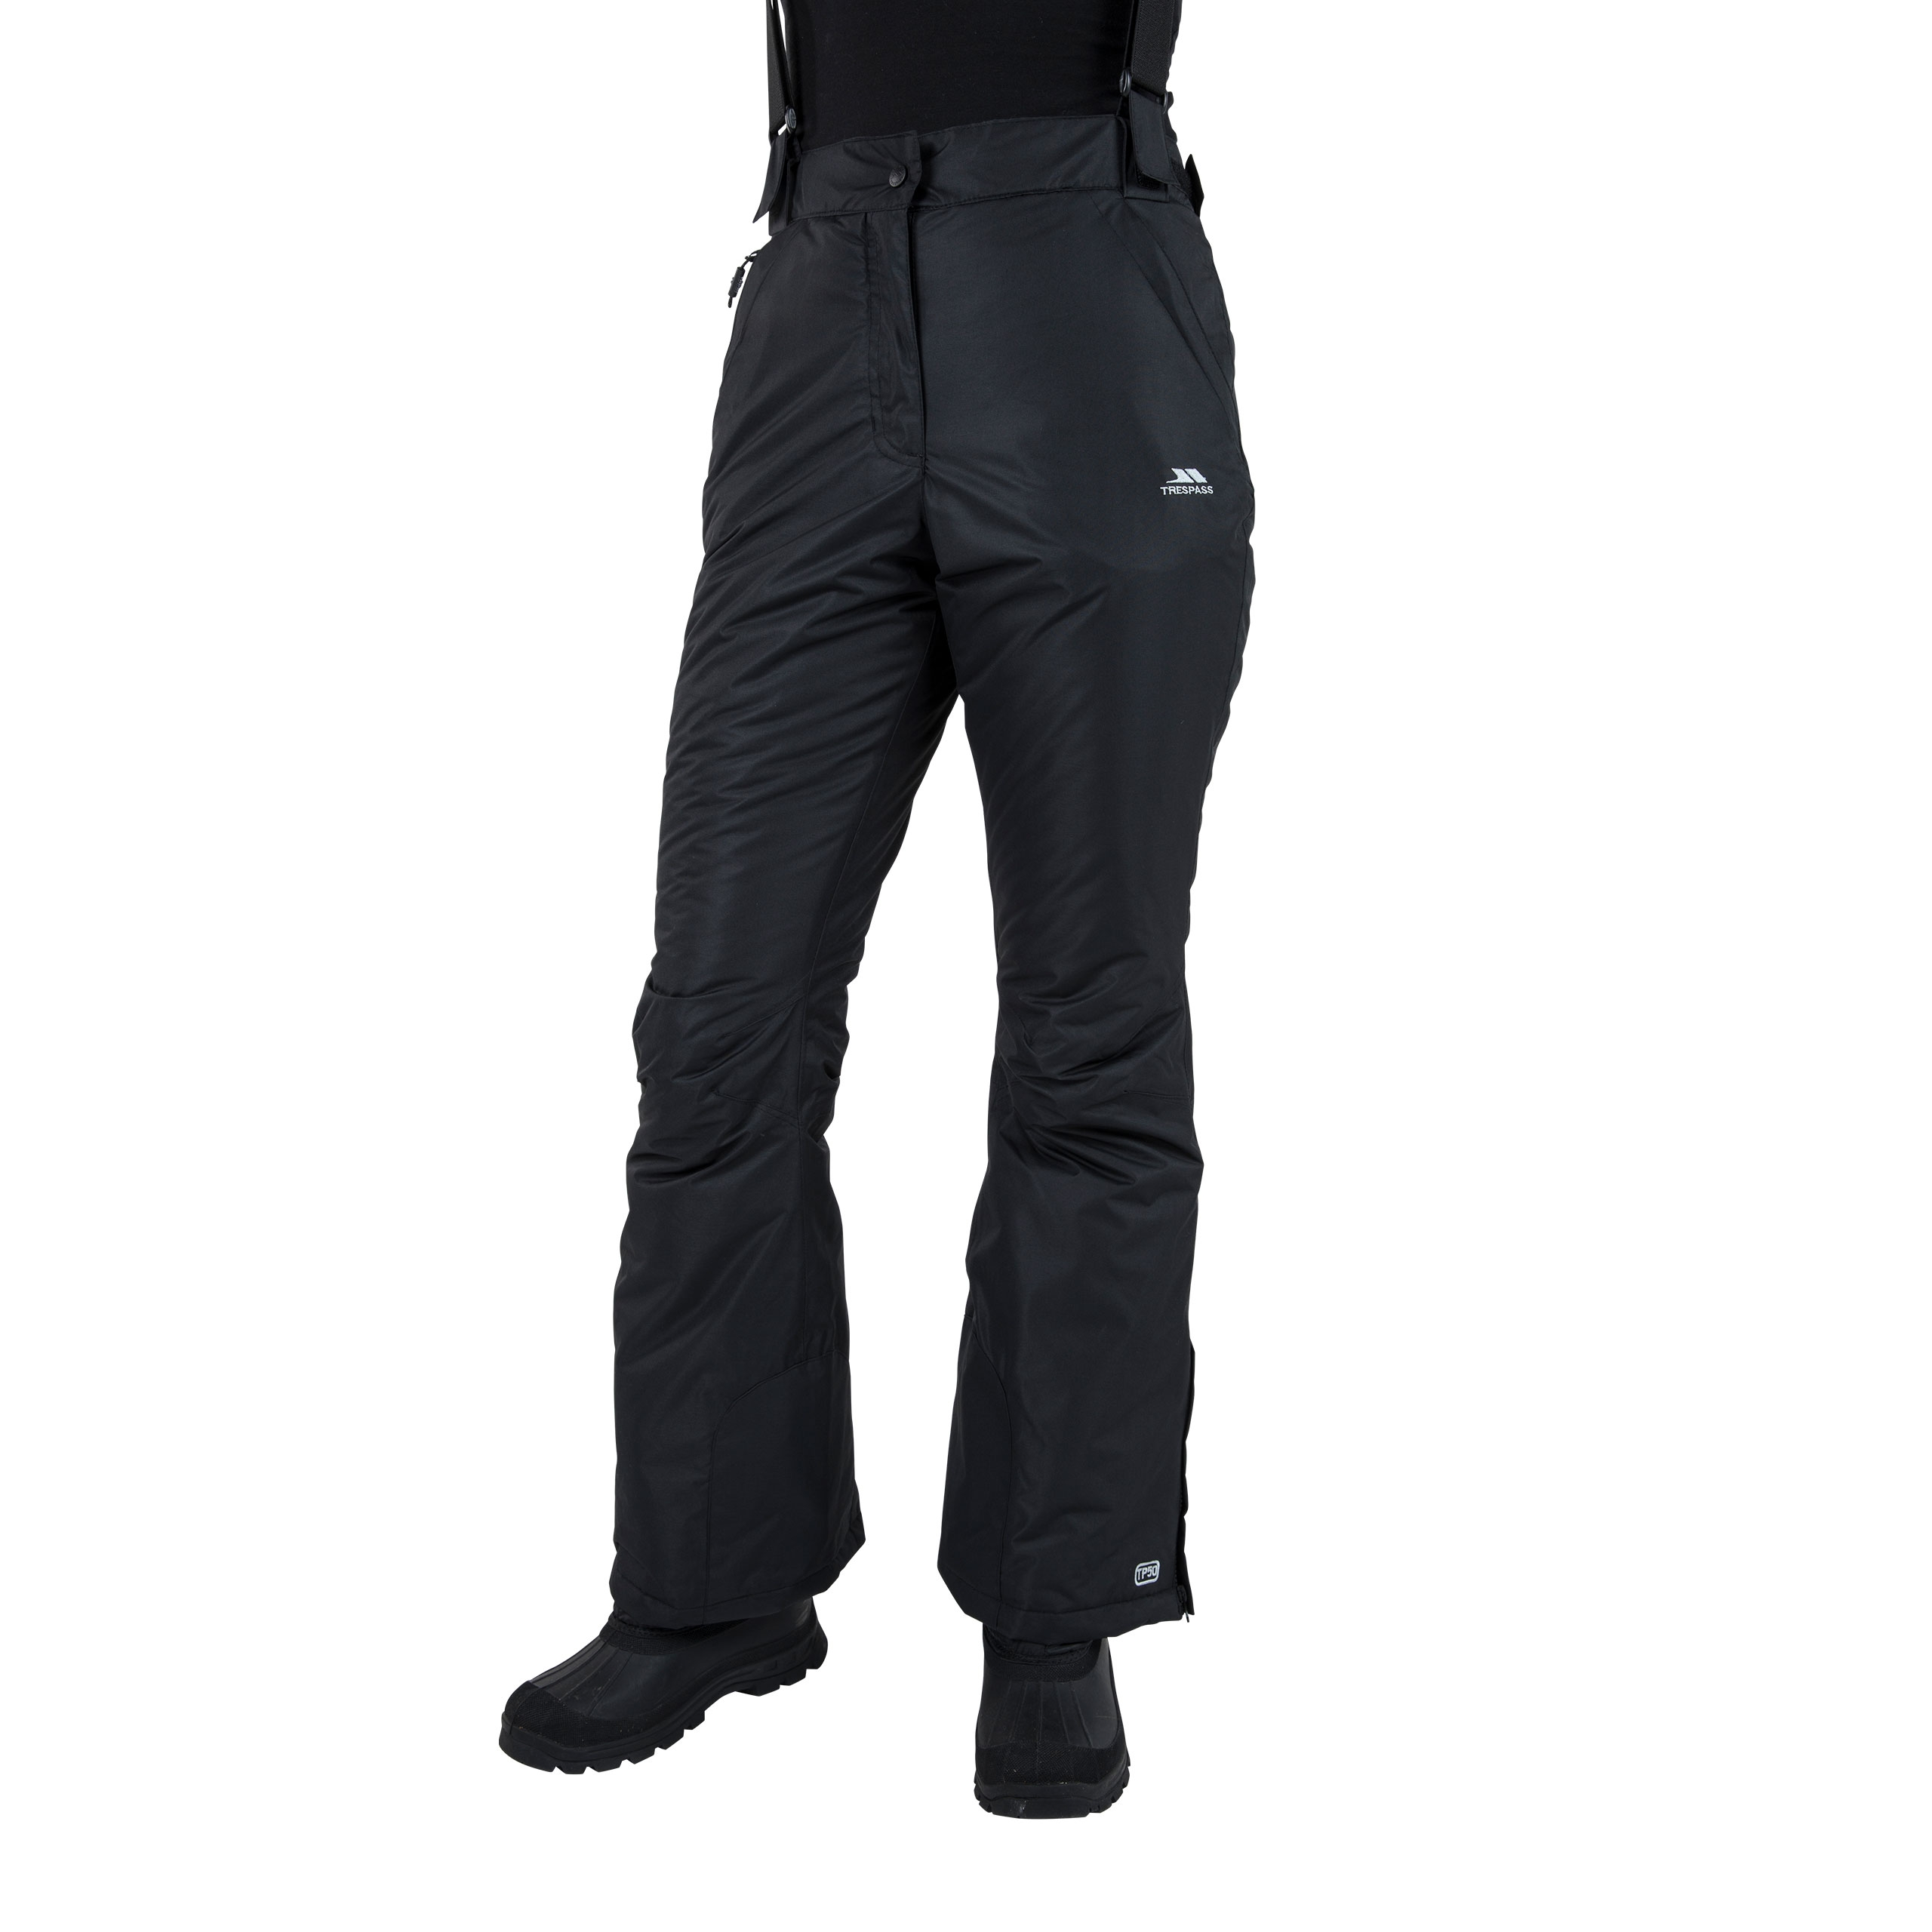 a0d843e6 Womens Black Dress Pants With Pockets | Lixnet AG